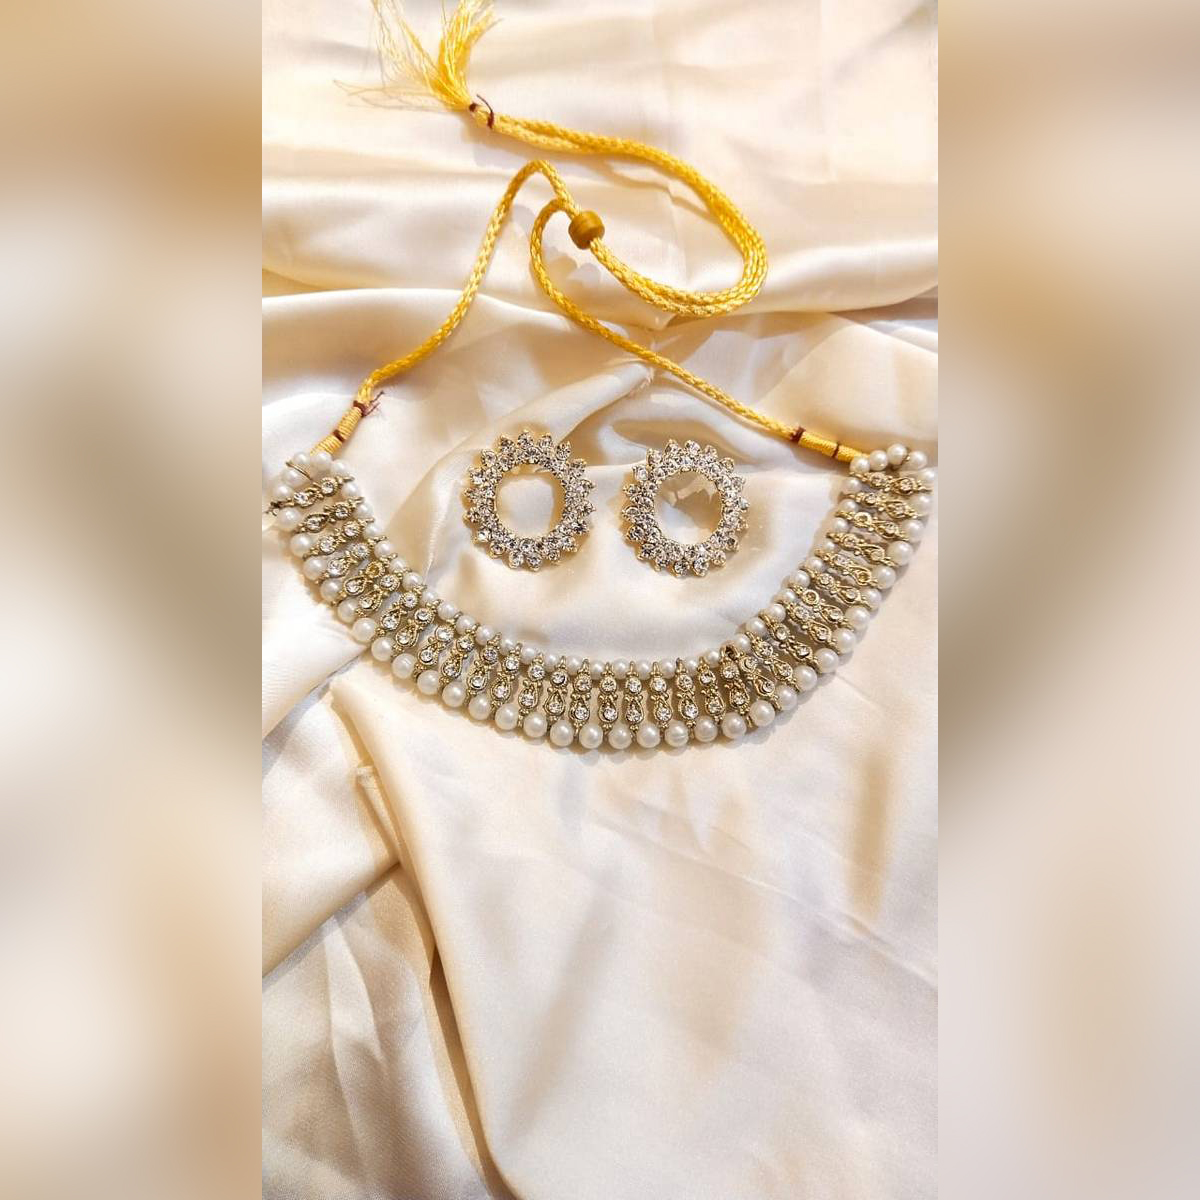 Antique Style White Stone With Pearl Necklace With White Stone Earrings-Box Free